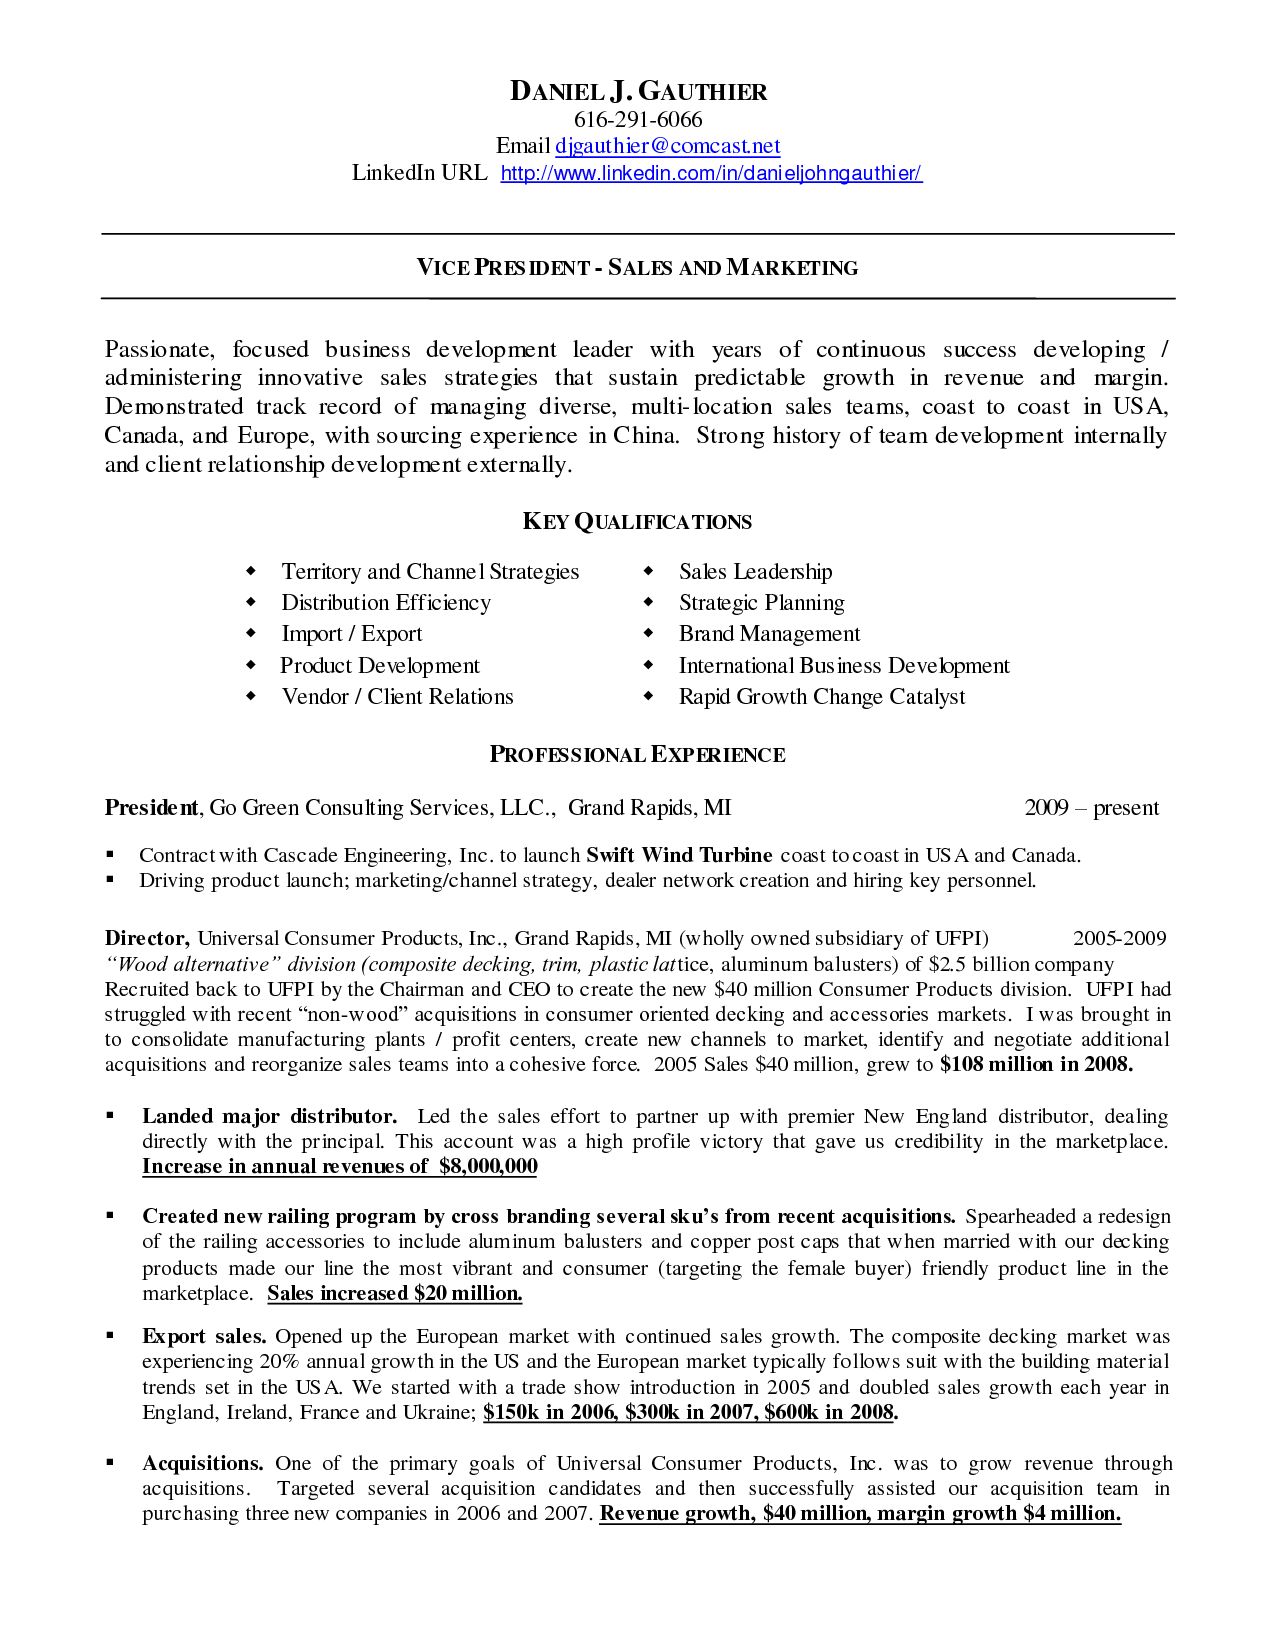 Résumé & LinkedIn Samples Resume, Resume writing, Sample